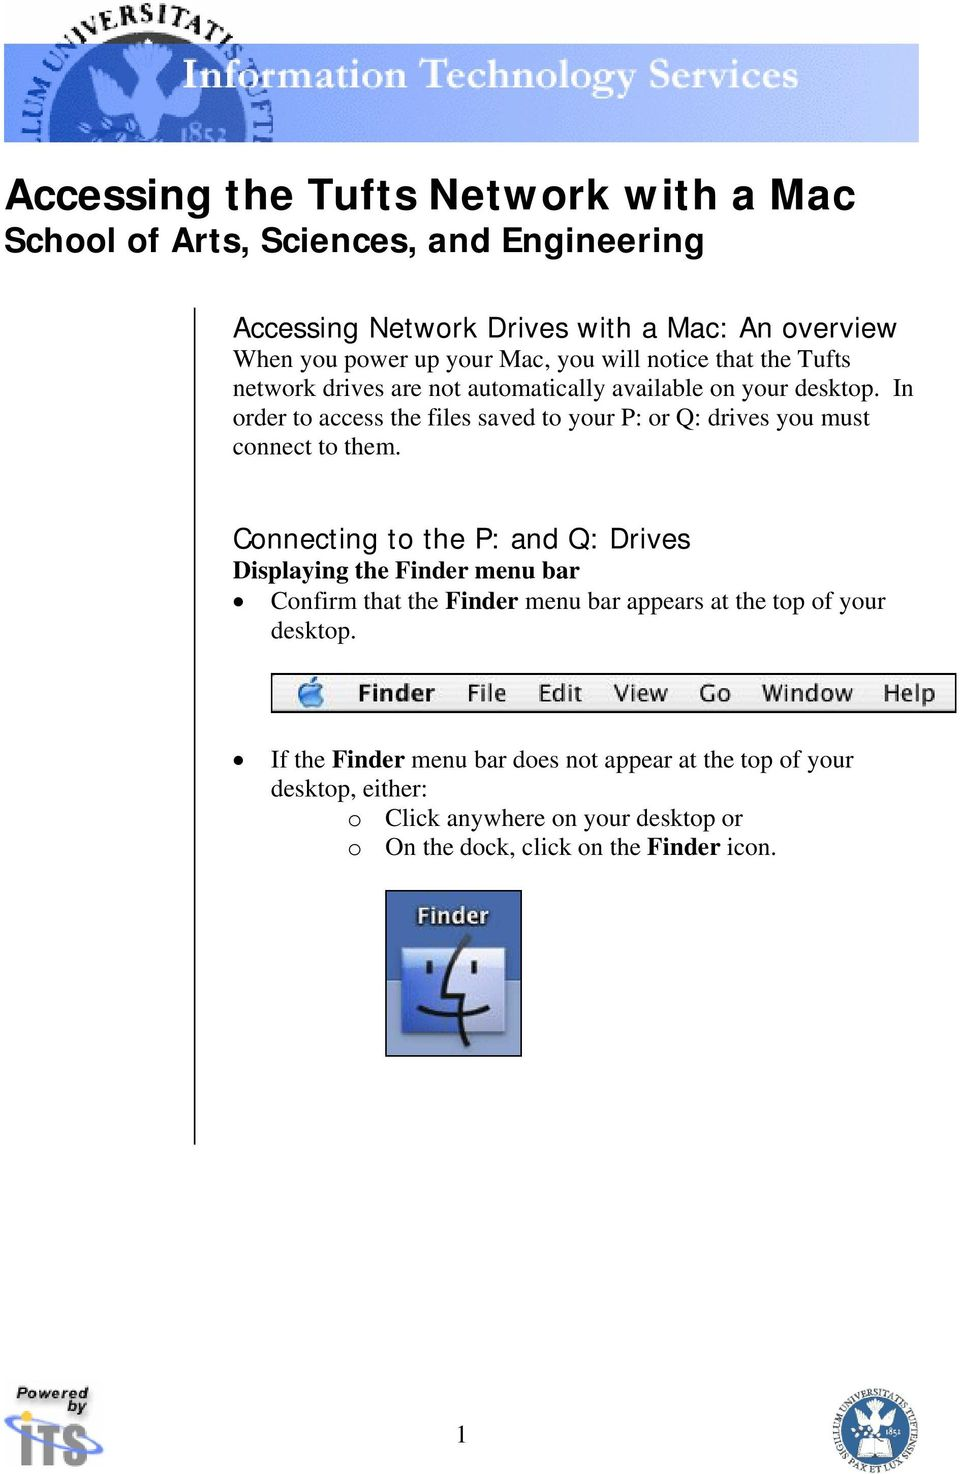 In order to access the files saved to your P: or Q: drives you must connect to them.